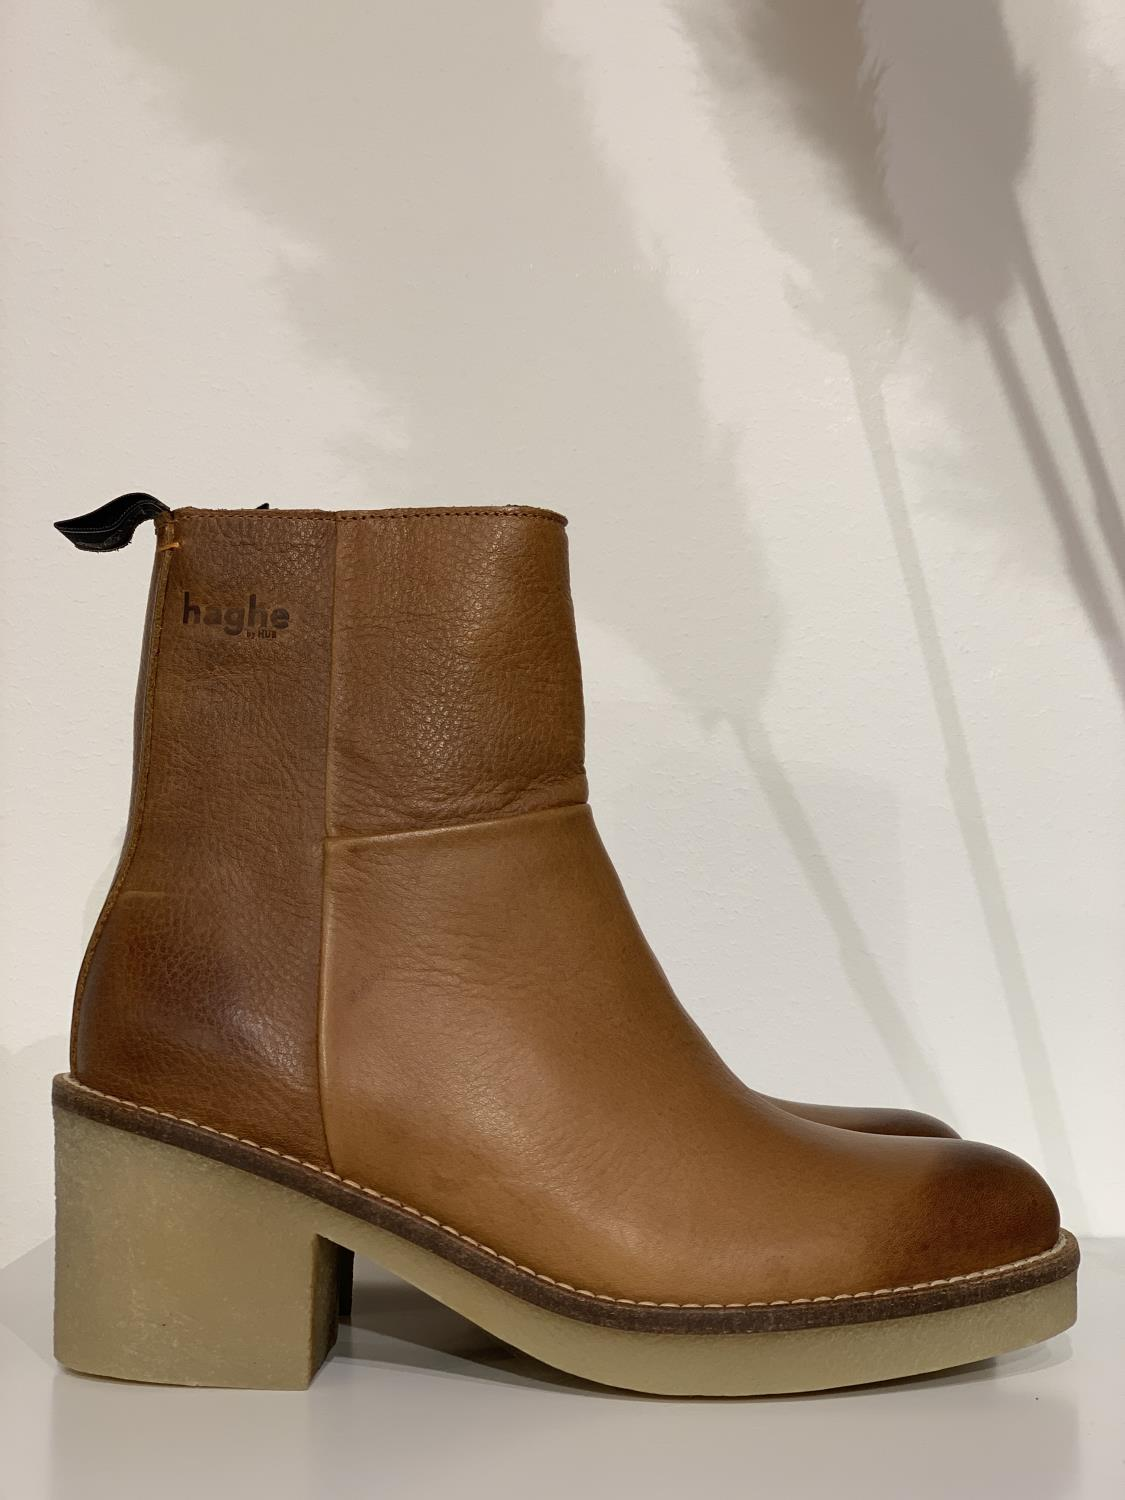 GUARDA BOOT - HAGHE BY HUB